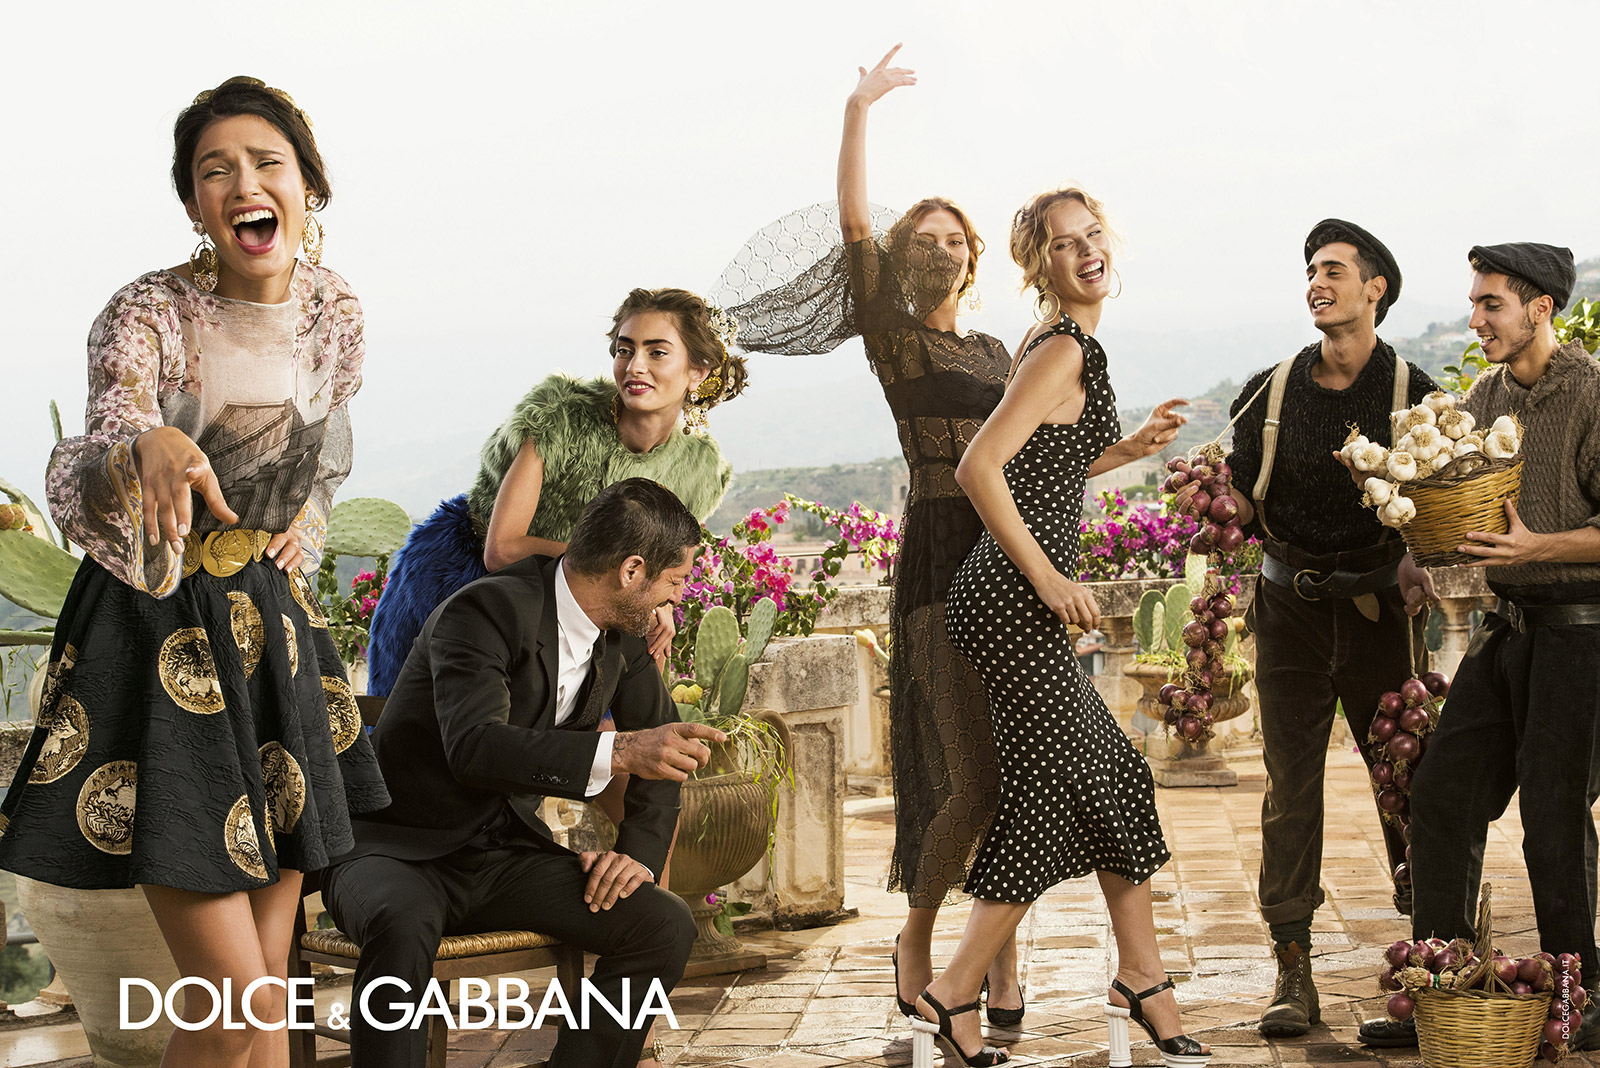 dolce-and-gabbana-ss-2014-womens-advertising-campaign-01-zoom-Copy